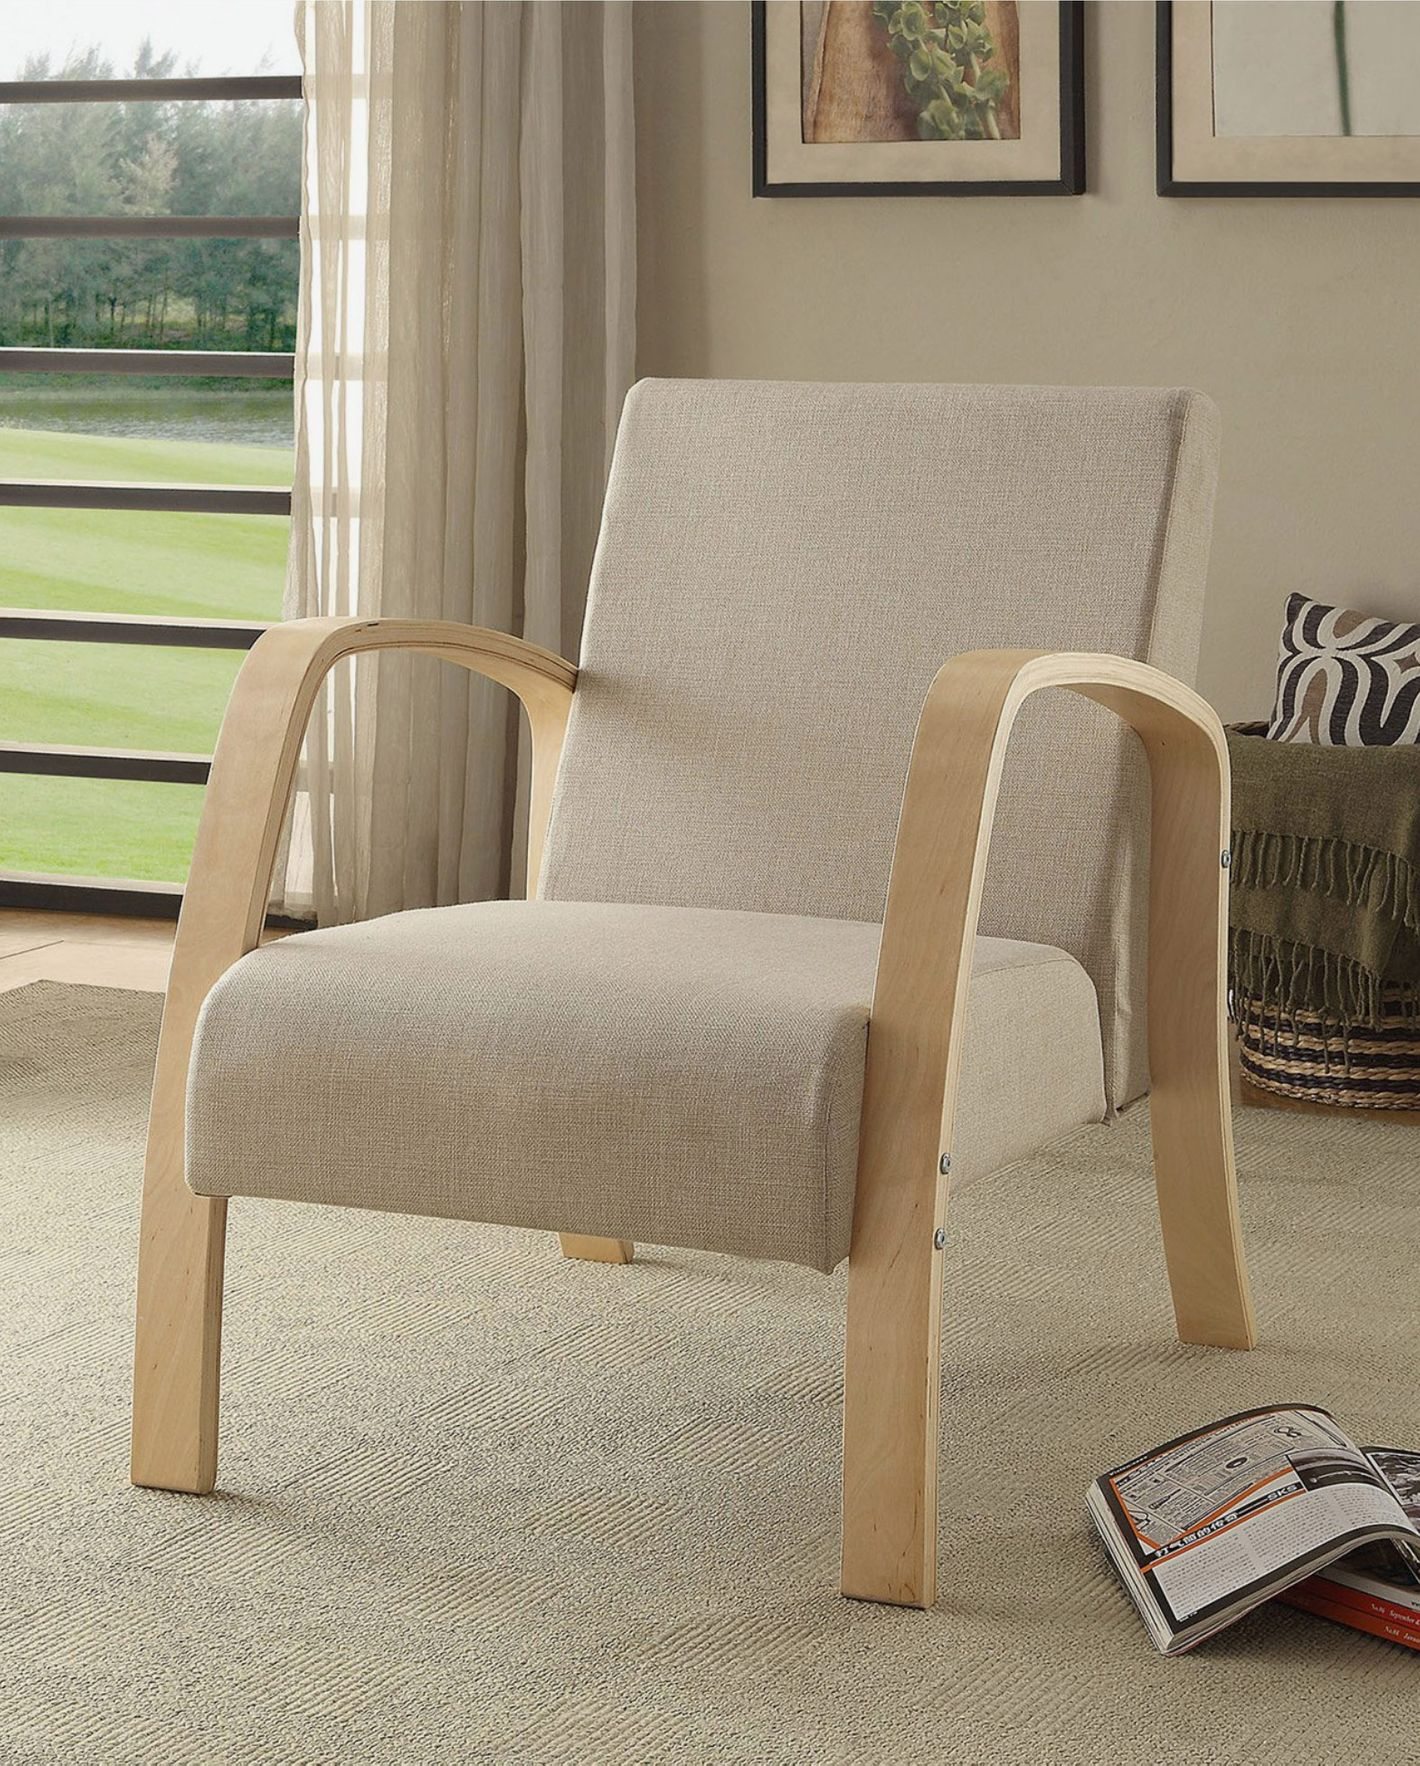 4D Concepts Danish Collection Arm Chair